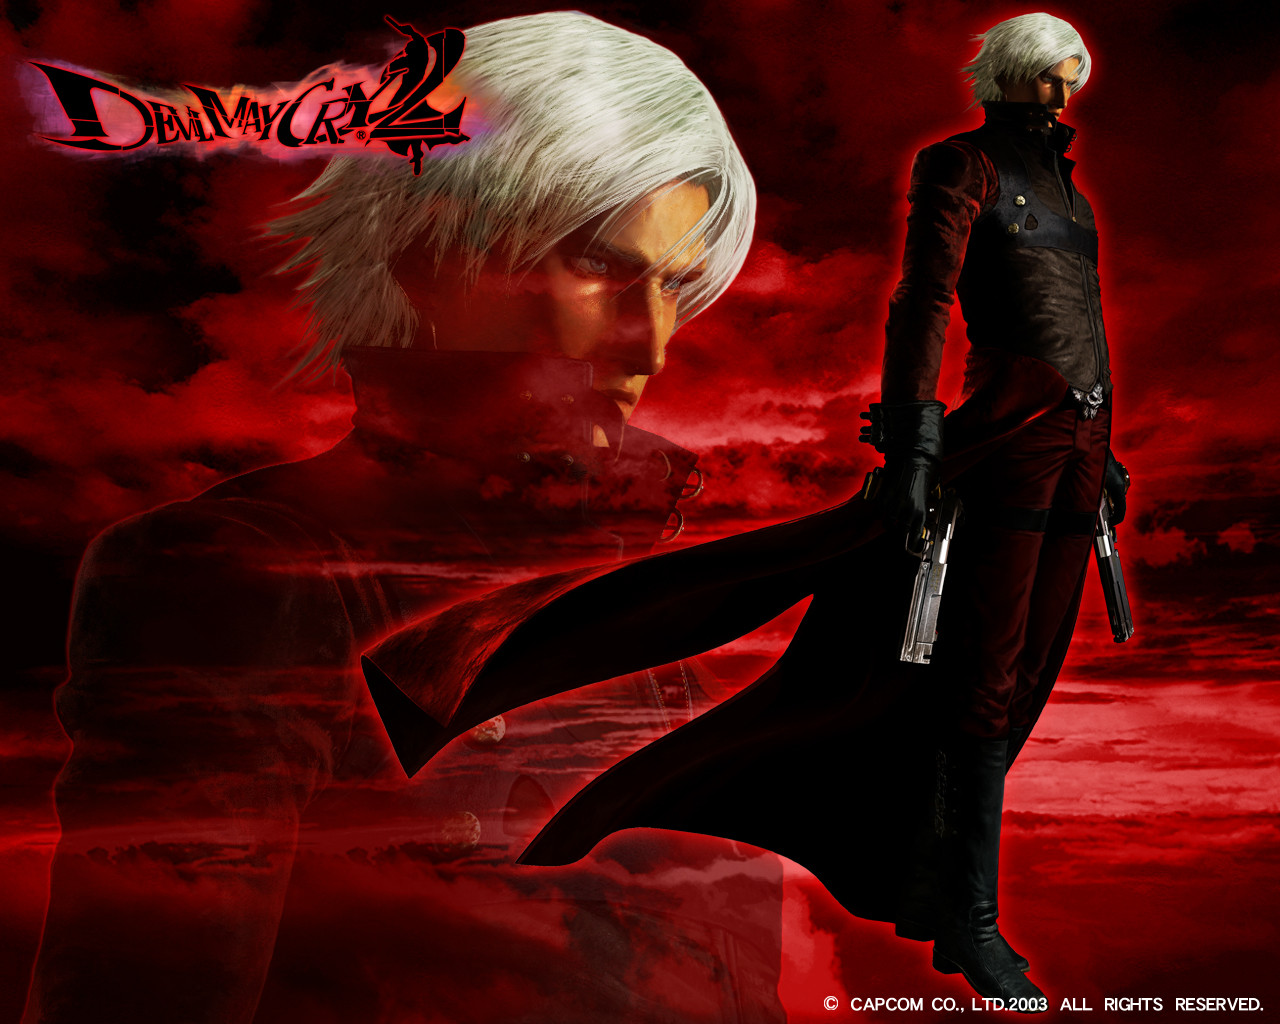 [Megapost] Devil may cry